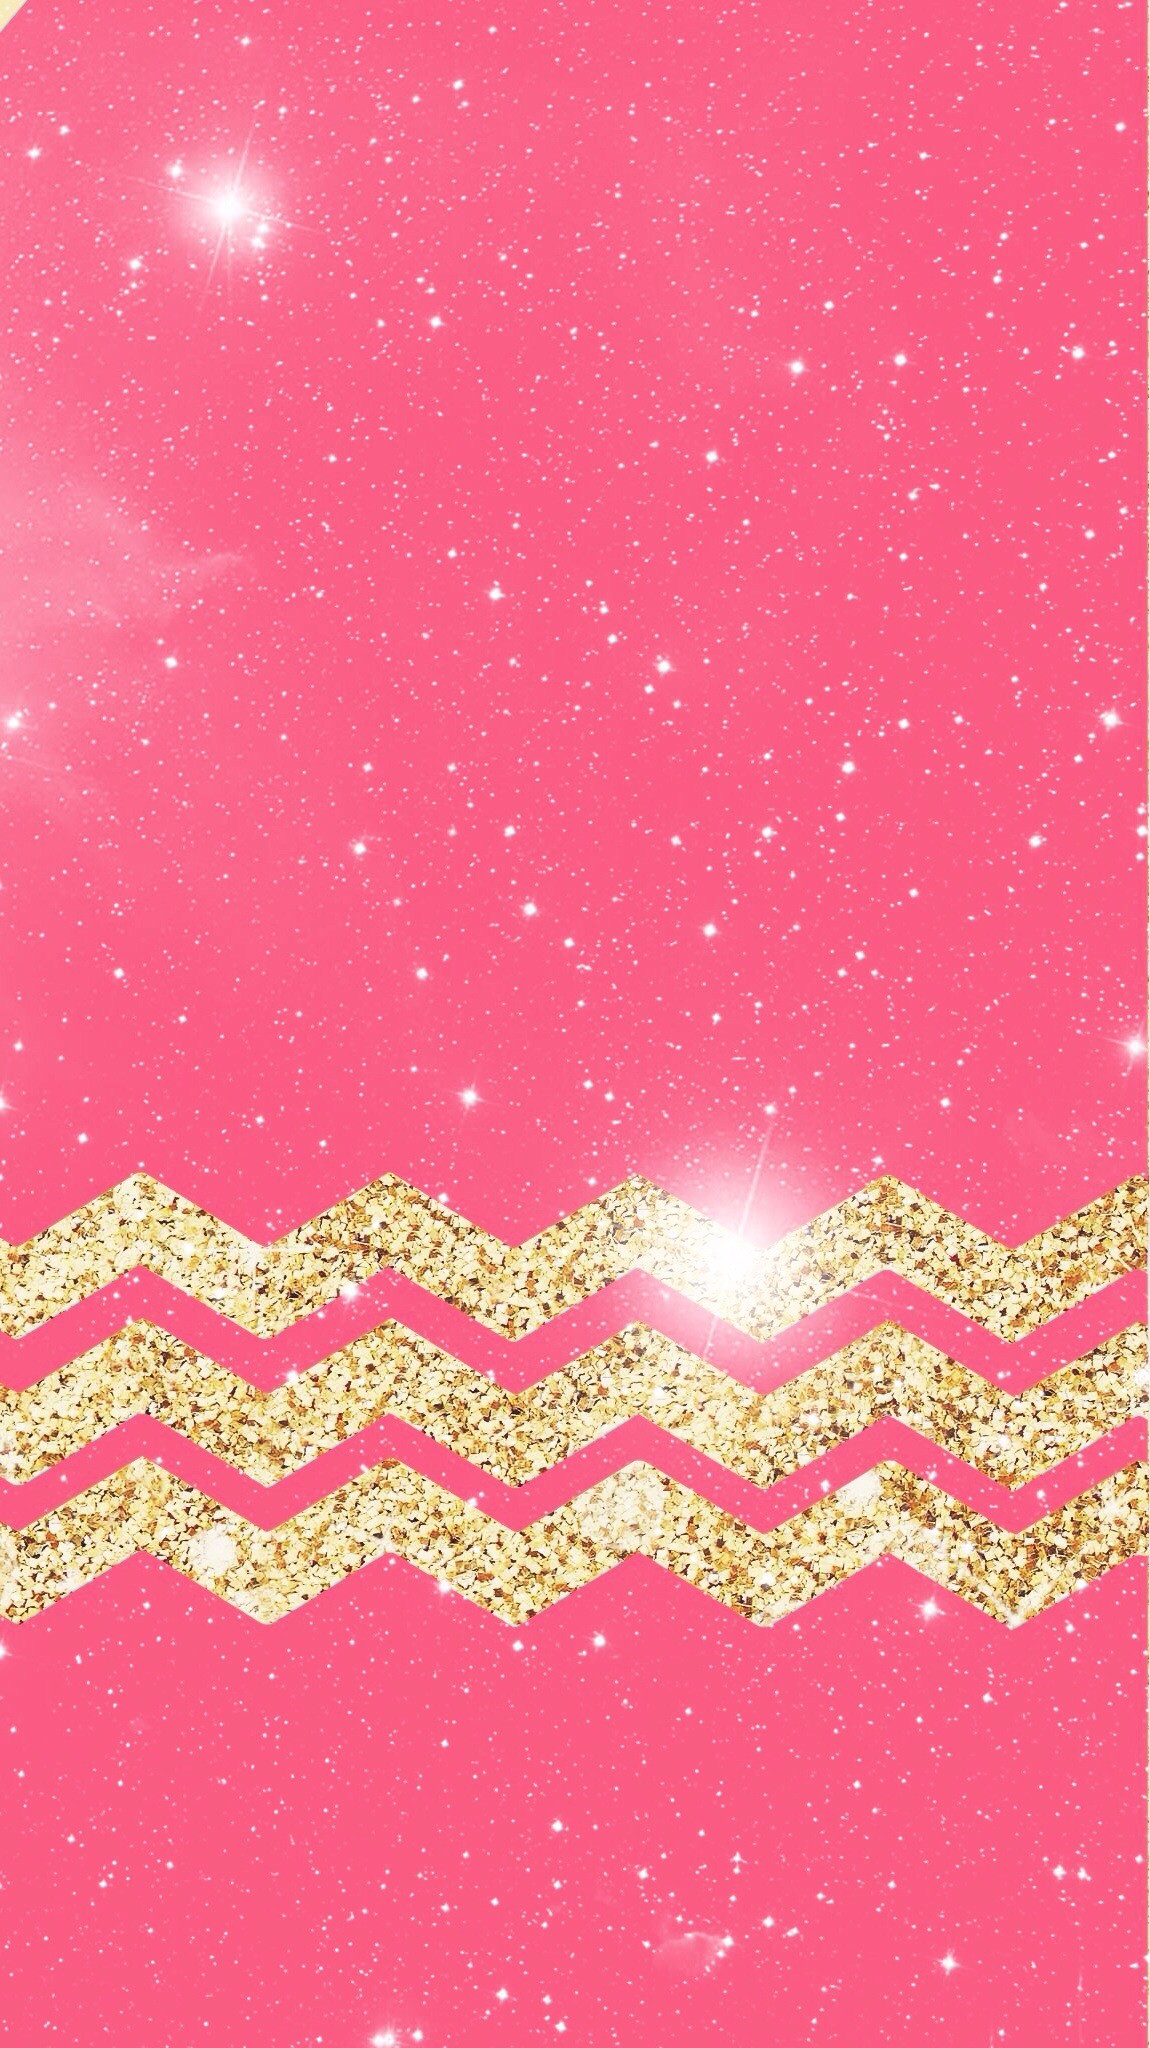 Pink and Gold background  Download free cool backgrounds